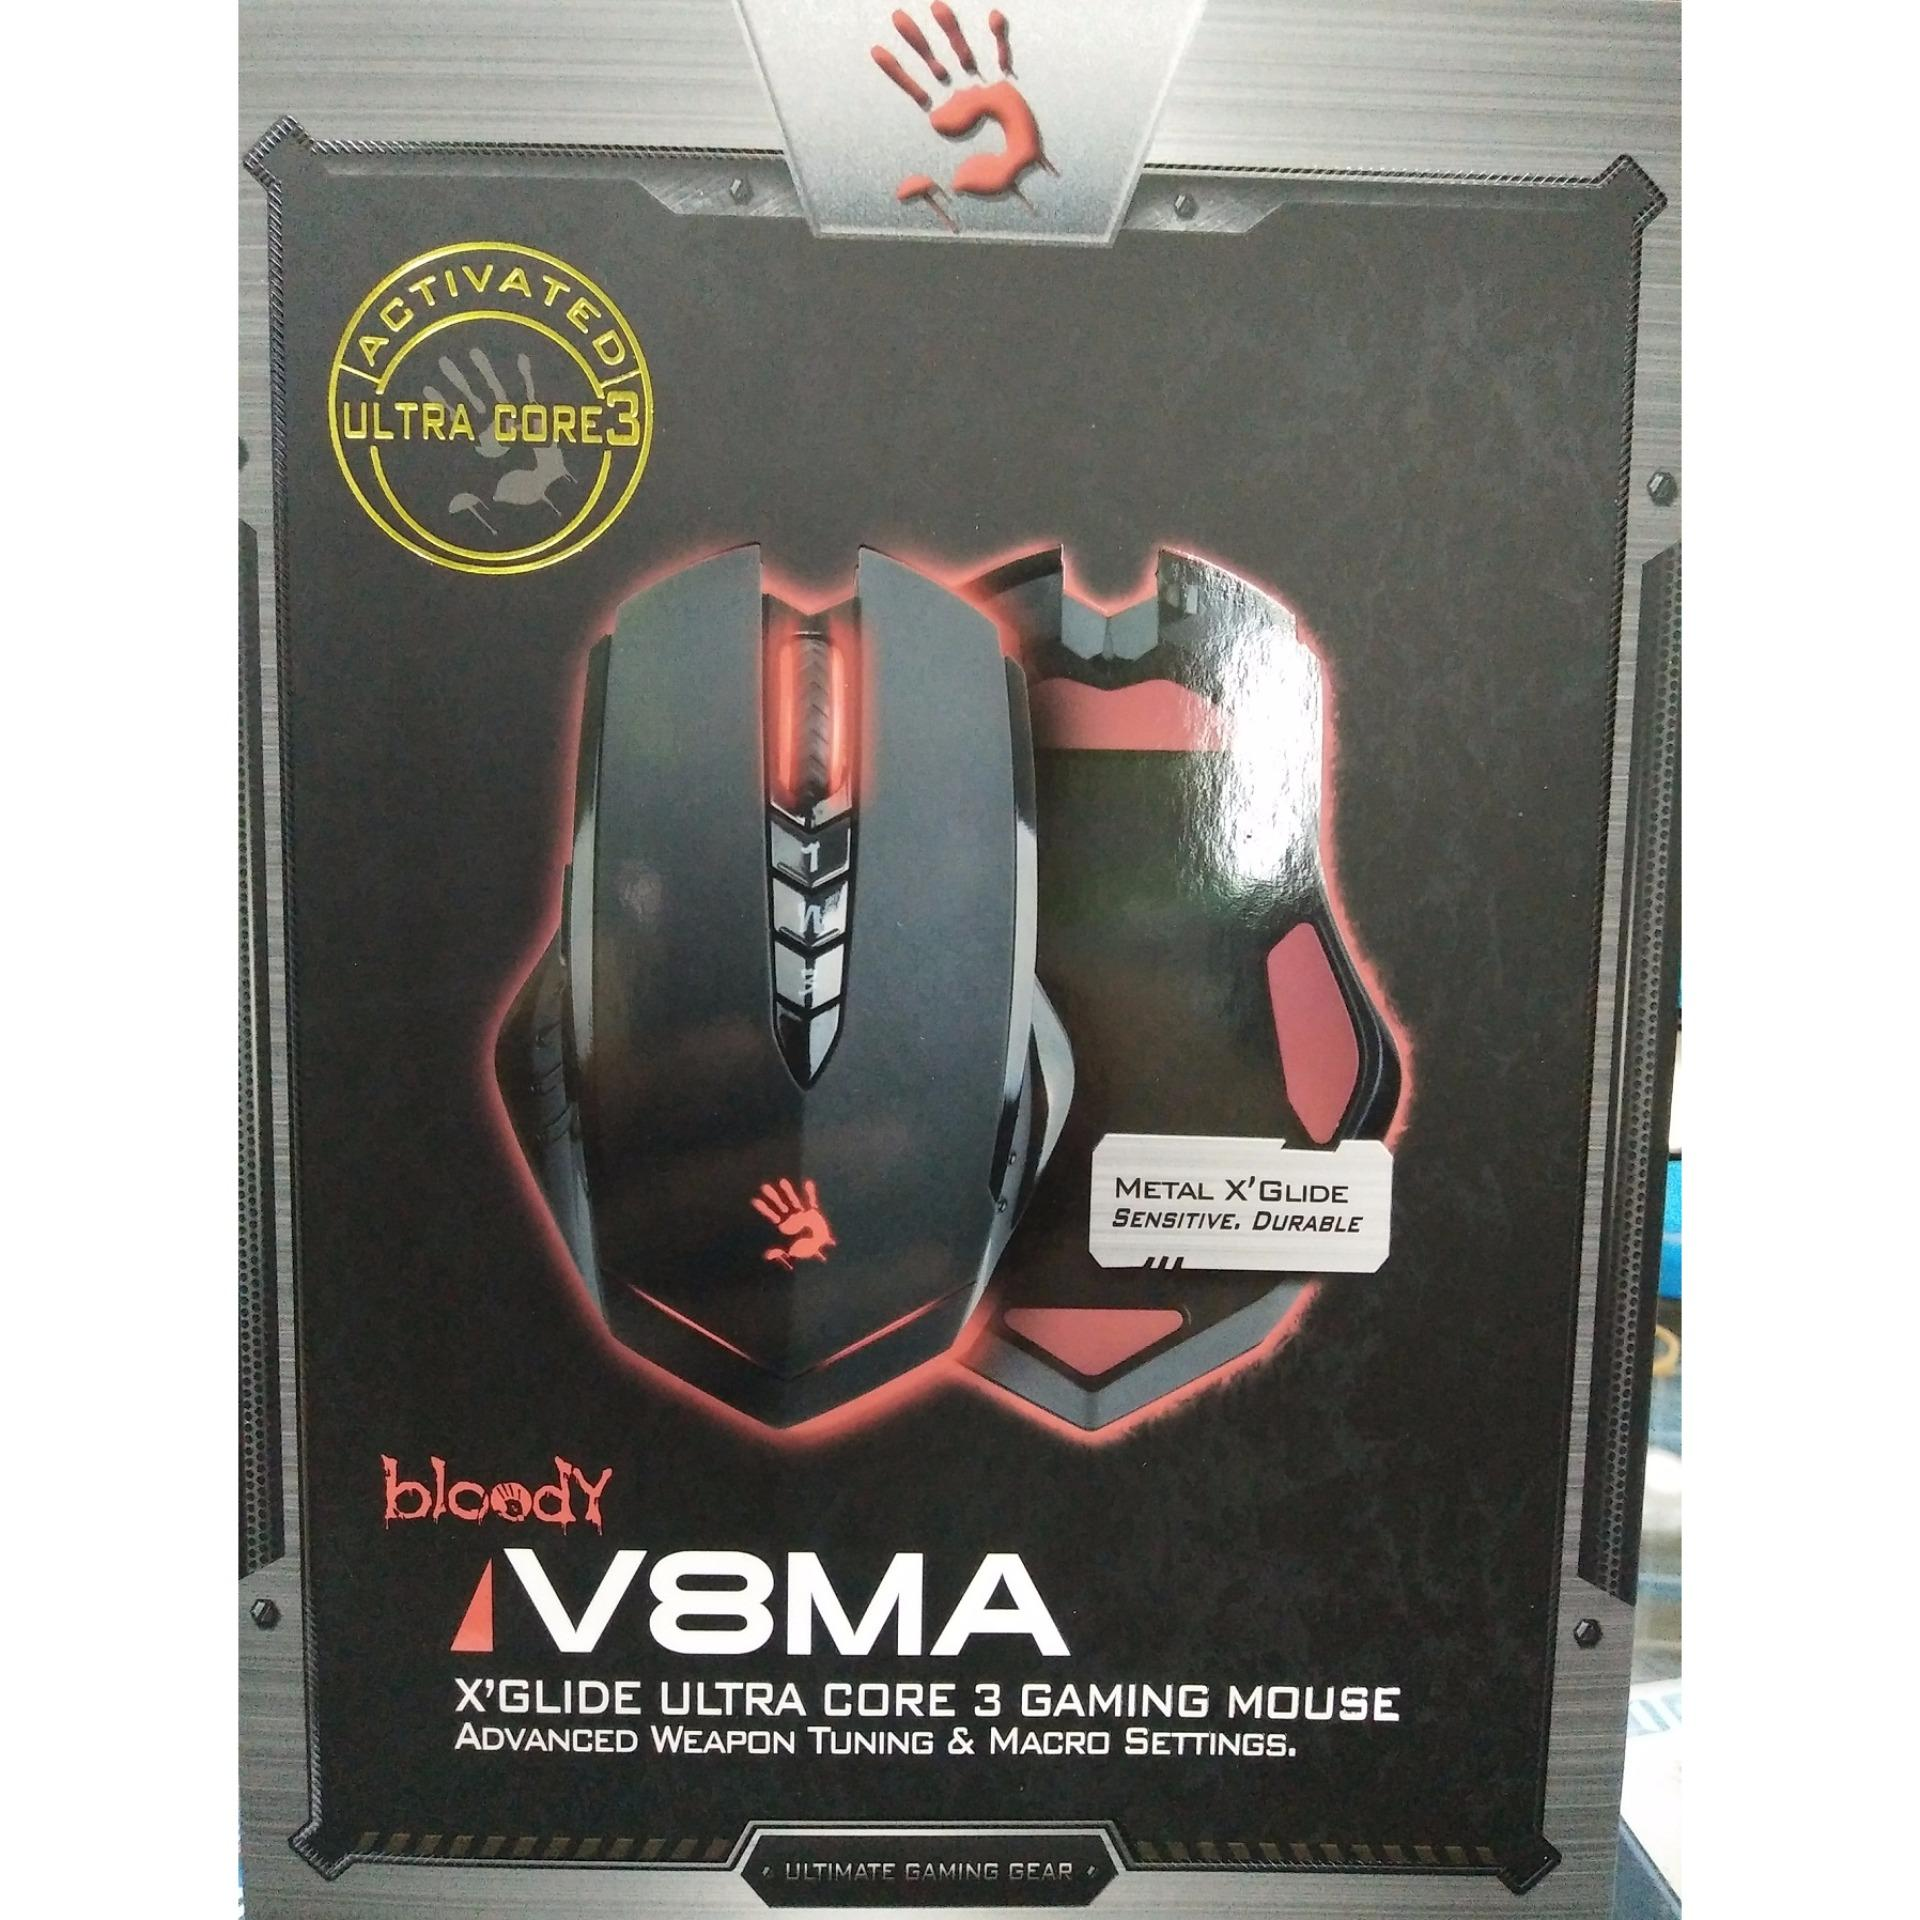 Bloody V8ma X Glide Ultra Core 3 Gaming Mouse - Page 2 - Daftar